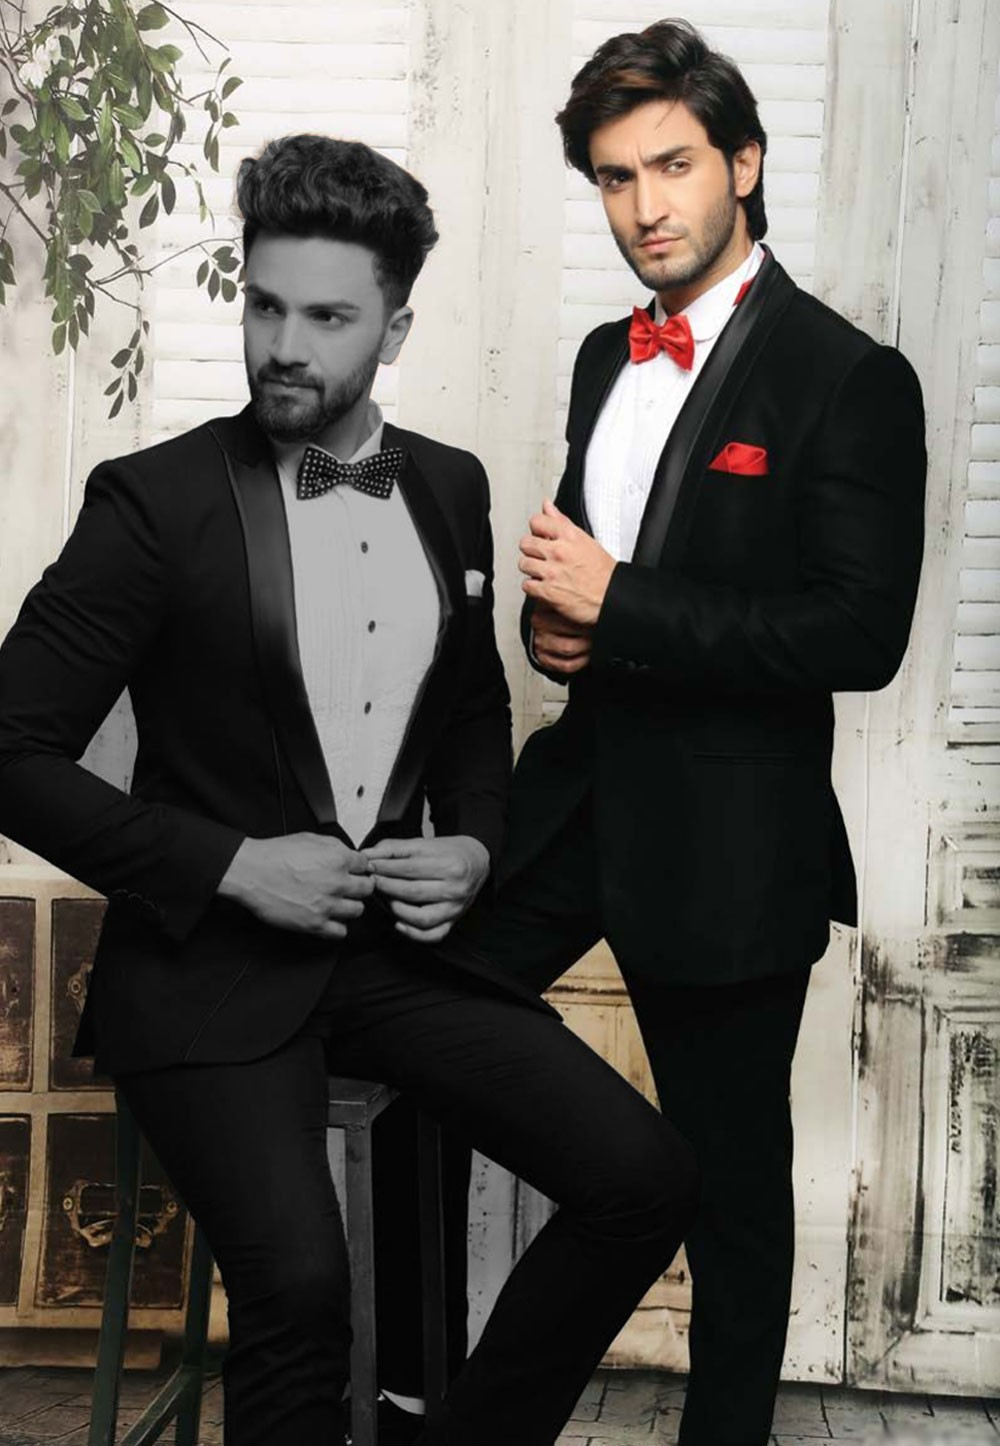 Buy Elegant black Color Tuxedo Suit Online for Men in USA